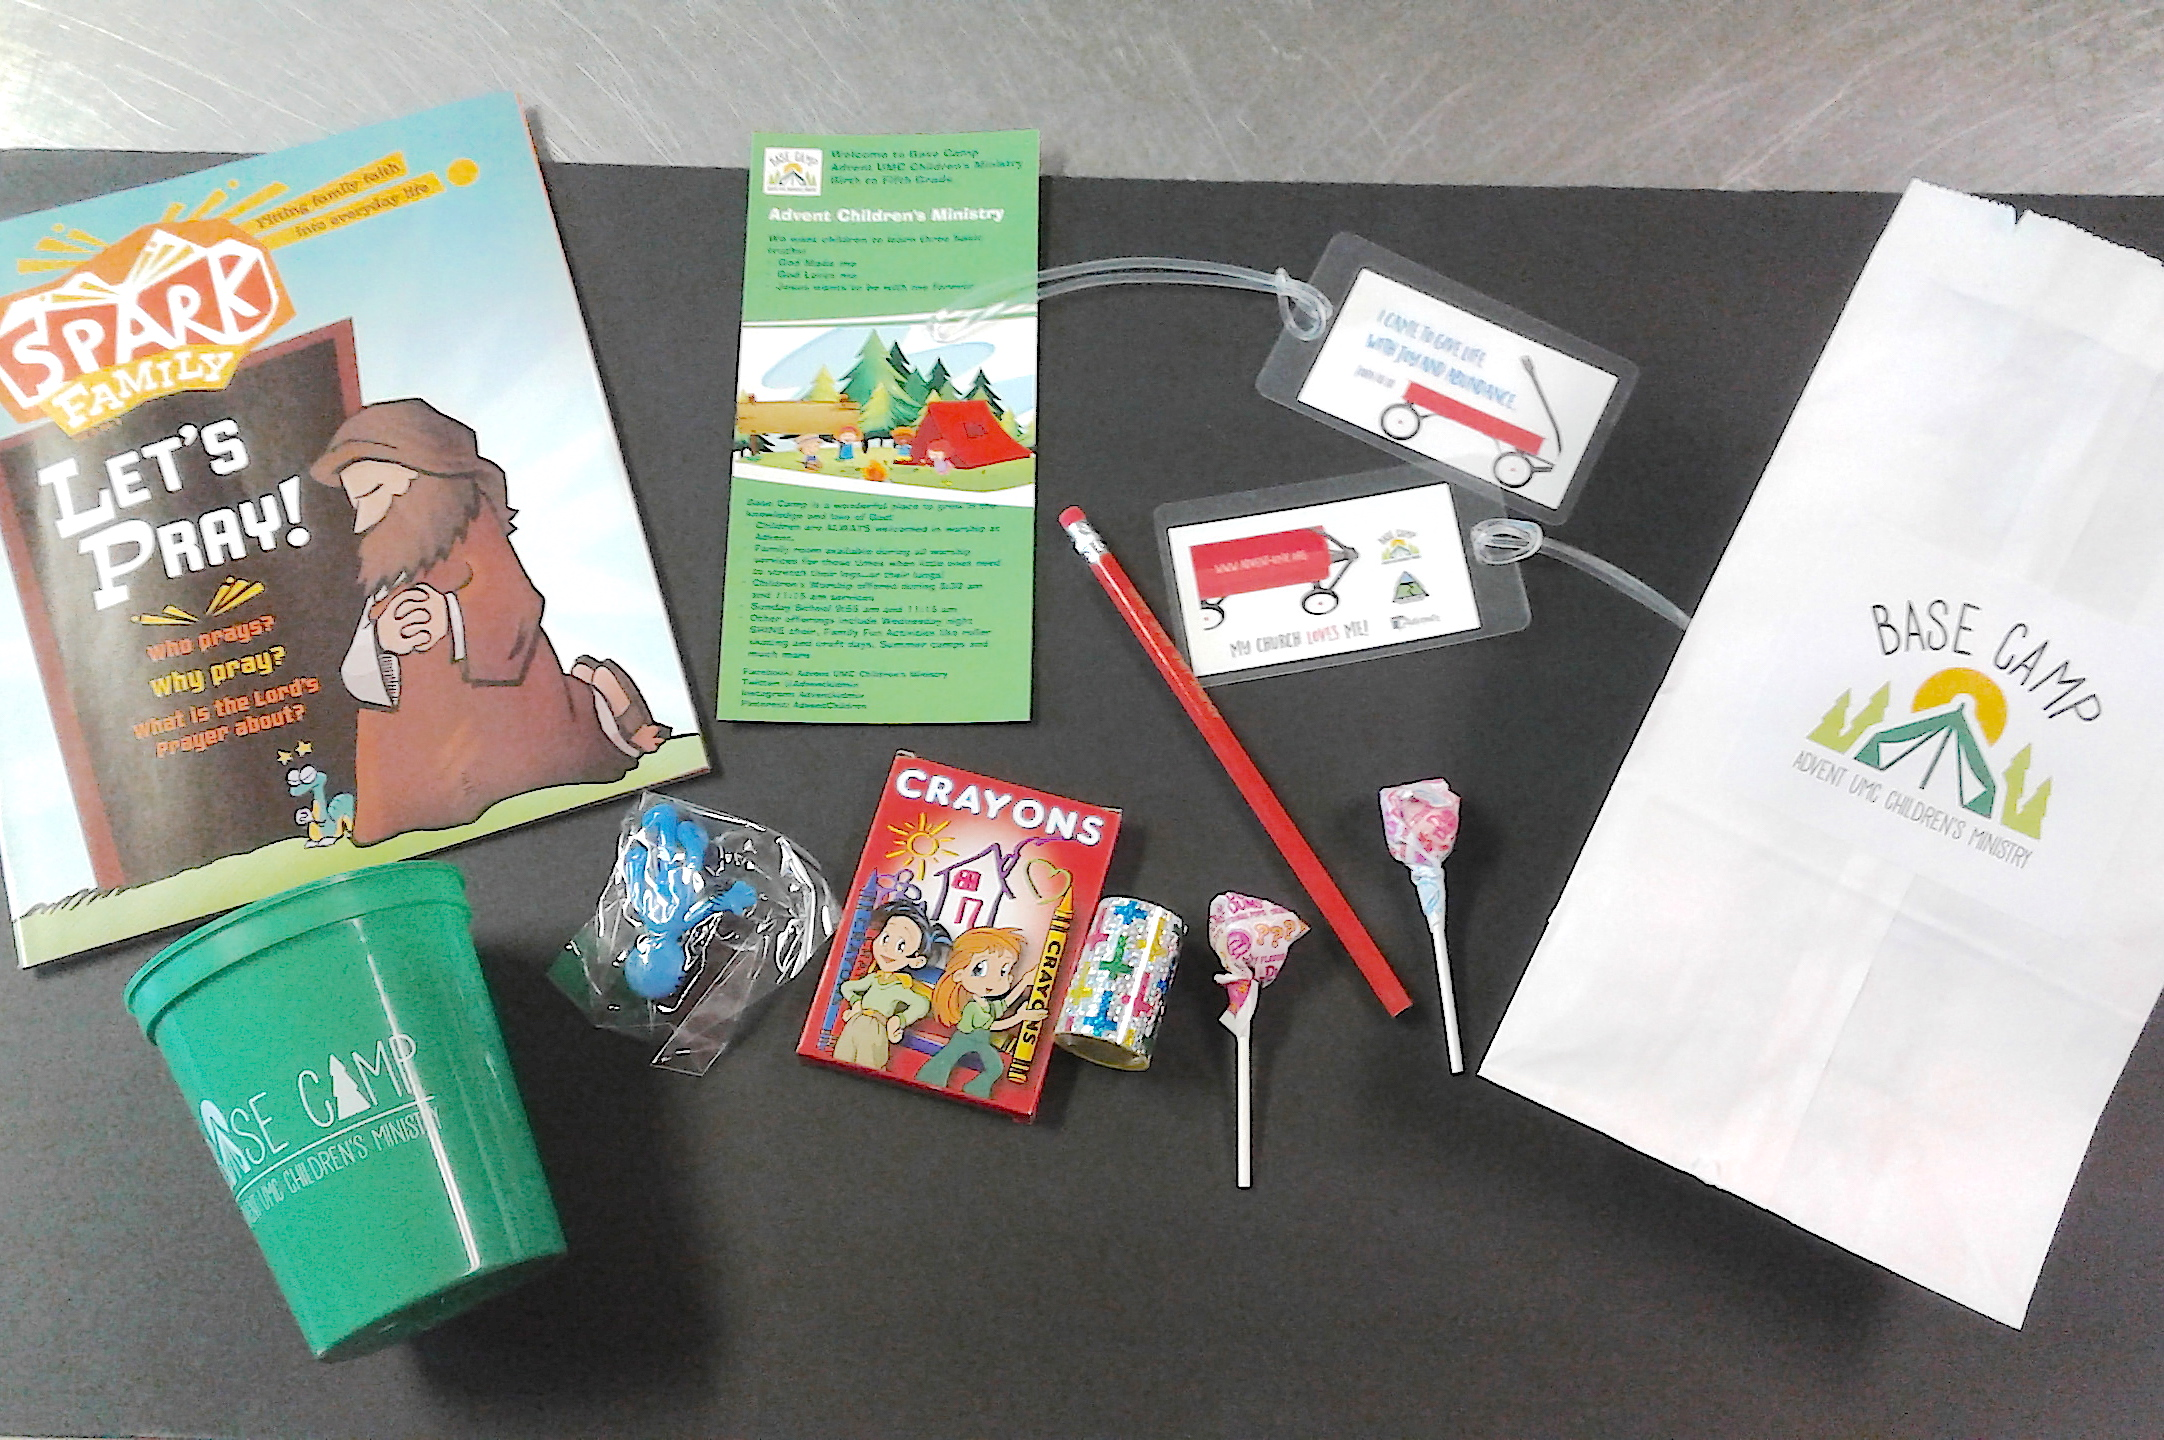 Church visitor welcome bags for children any child who visits is handed one of these bags on their first day at advent the response has been positive from children and parents in addition church kristyandbryce Gallery